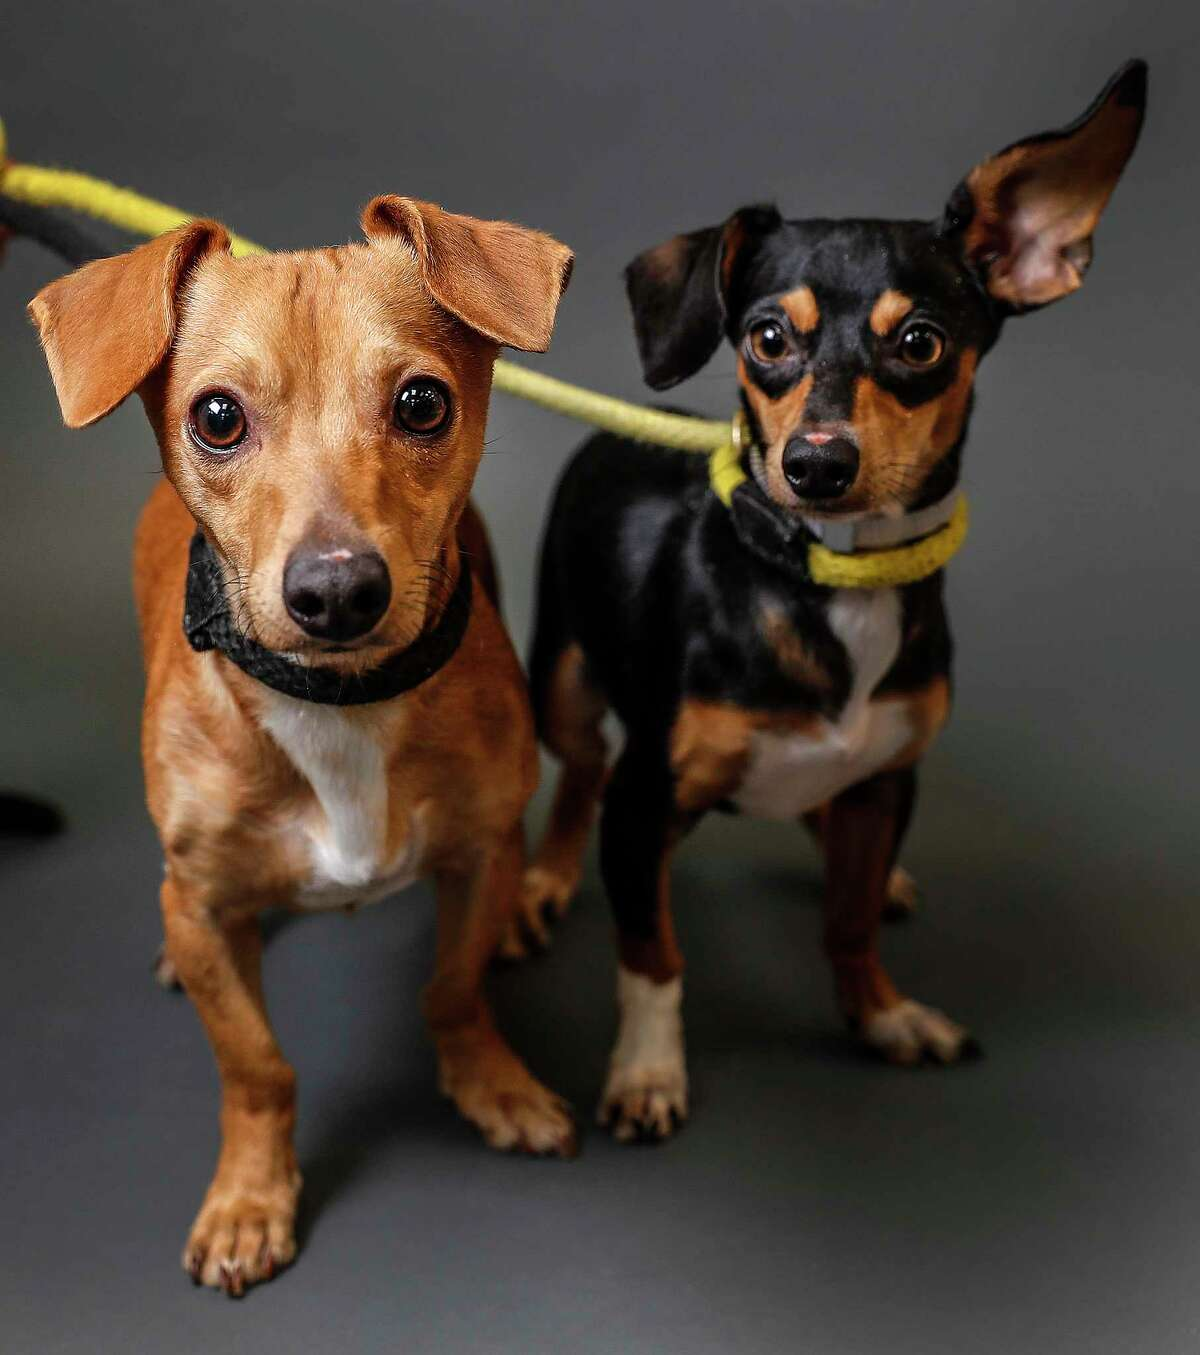 Johnny (Animal ID: 41175039) is a 2-year-old, male, tan Chihuahua mix and is bonded with June (Animal ID: 41175133) who is a 1-year-old, female, Dachshund mix. And they are ready to be adopted from Houston Humane Society. Photographed Tuesday, April 16, 2019, in Houston.